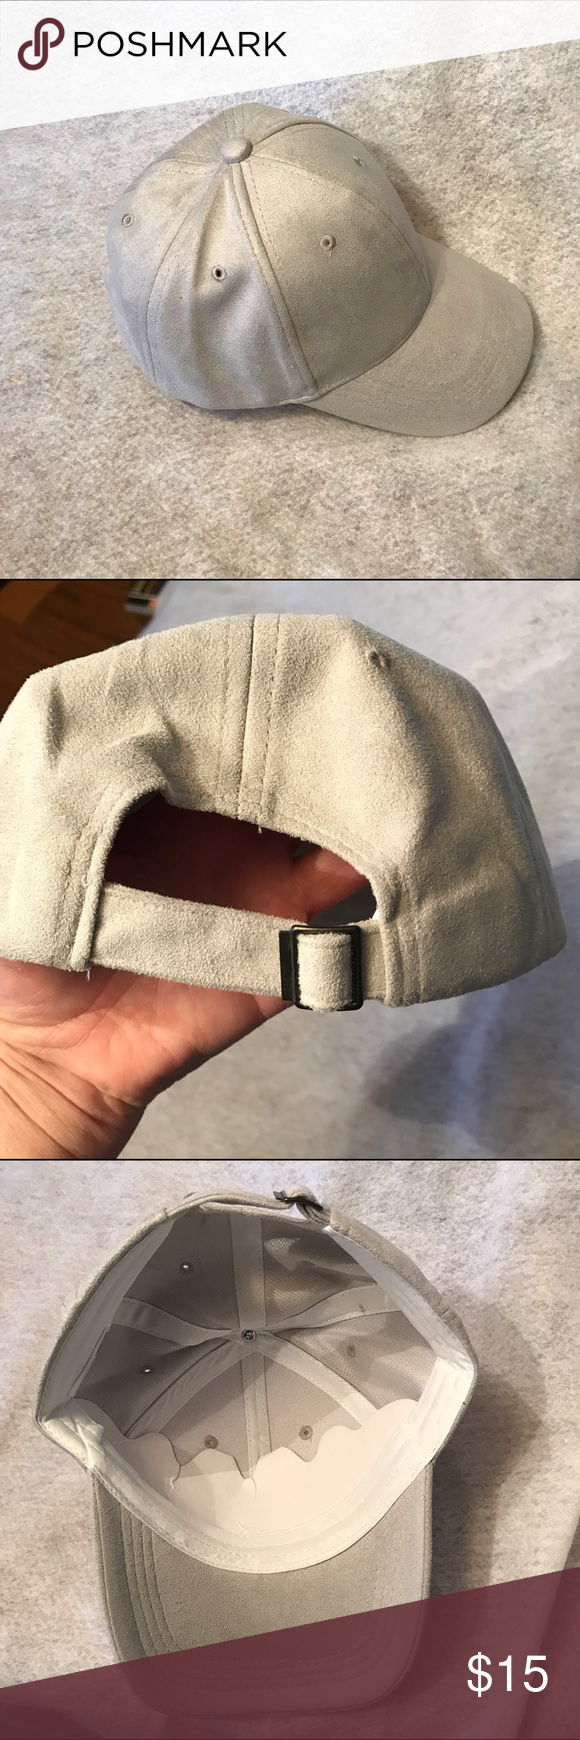 🆕 Faux Suede Baseball Hat NWOT!!  Faux suede baseball hat - adjustable. Color: light grey. One size fits most. Bundle discount available. No trades. Accessories Hats